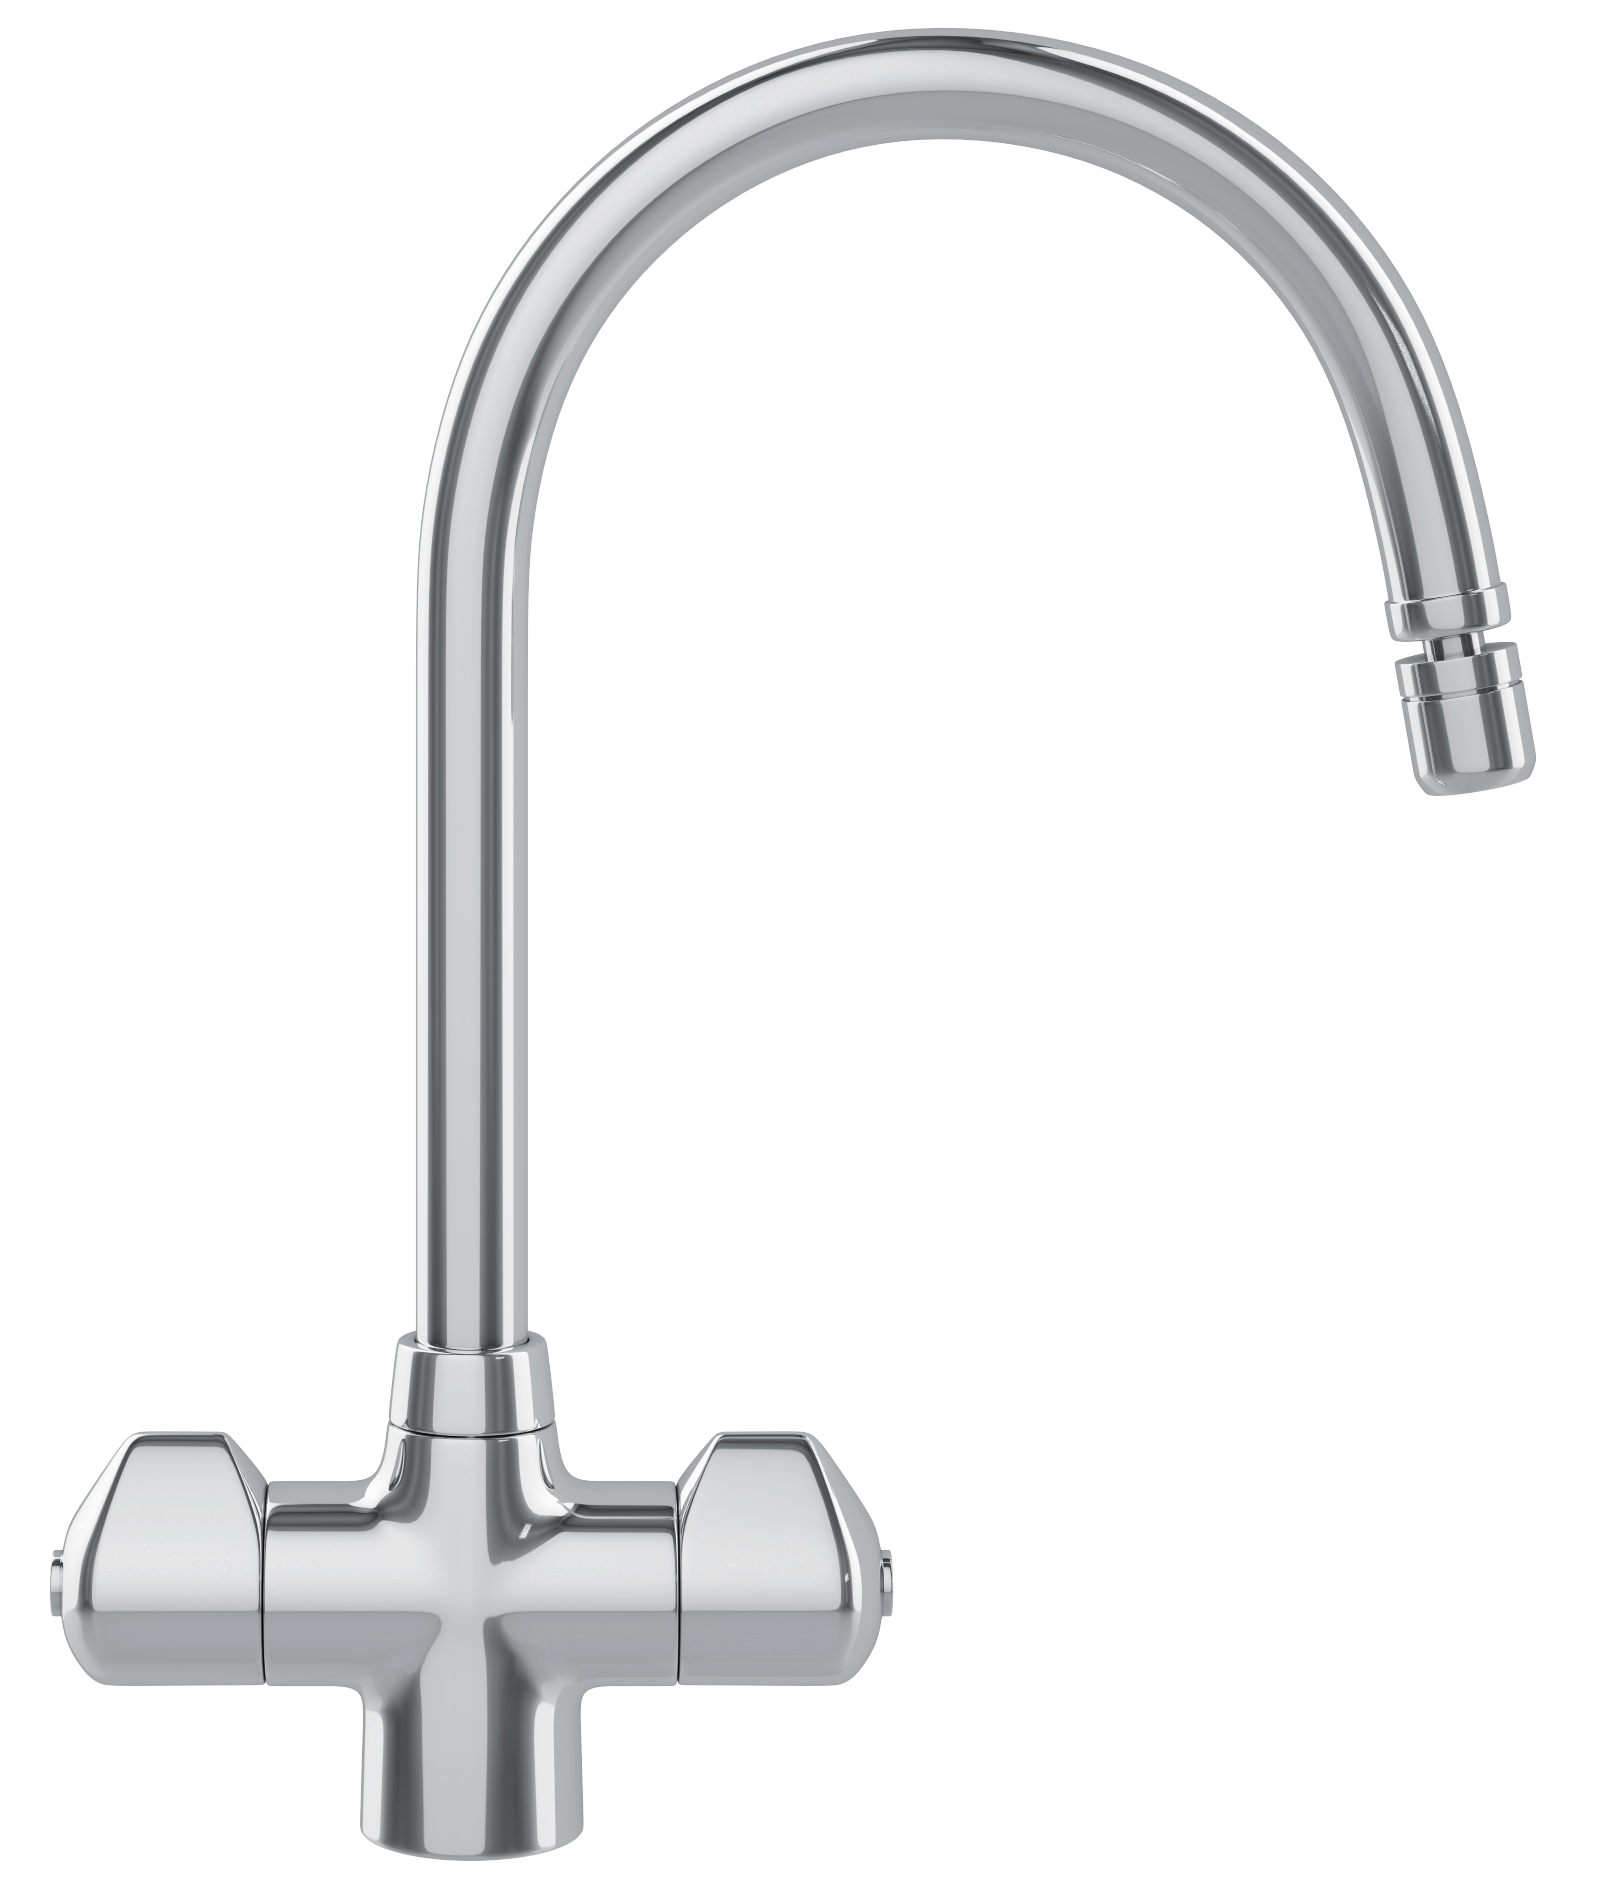 Franke Kitchen Mixer : ... taps kitchen mixer taps franke moselle kitchen sink mixer tap chrome